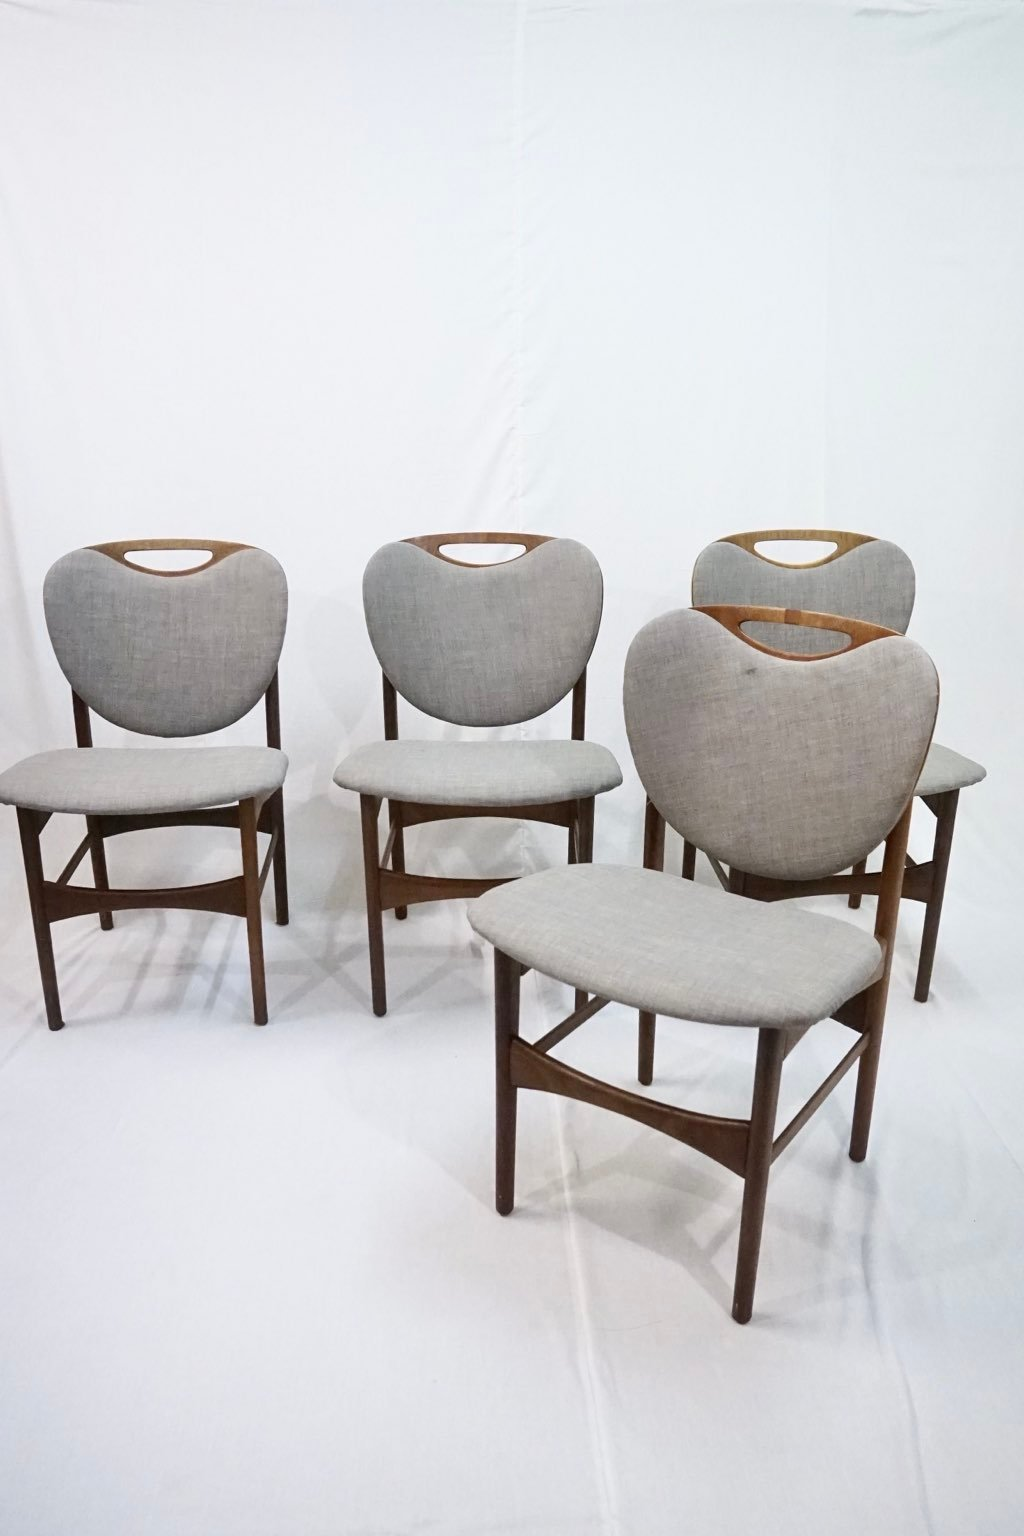 Set of four danish teak dining chairs : SOLD